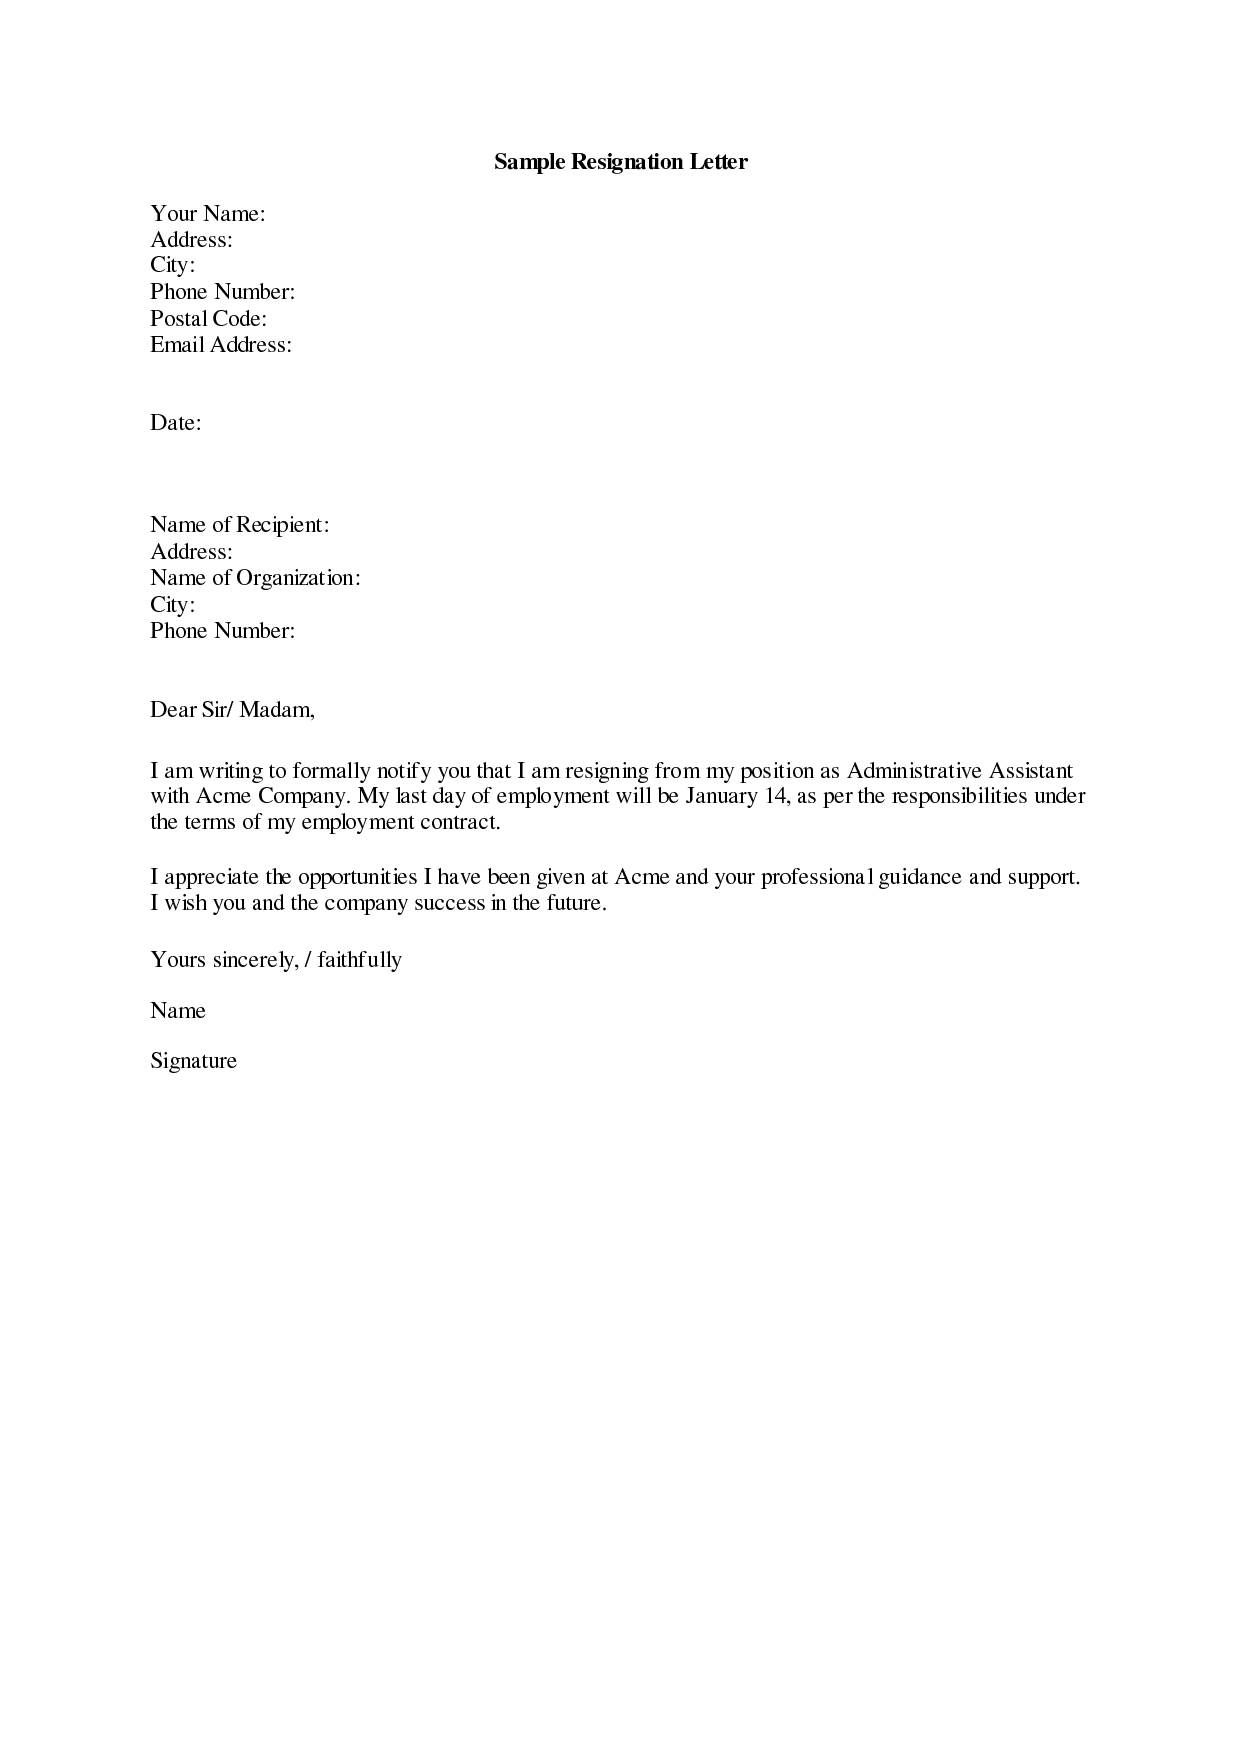 professional Letter of Resignation sample